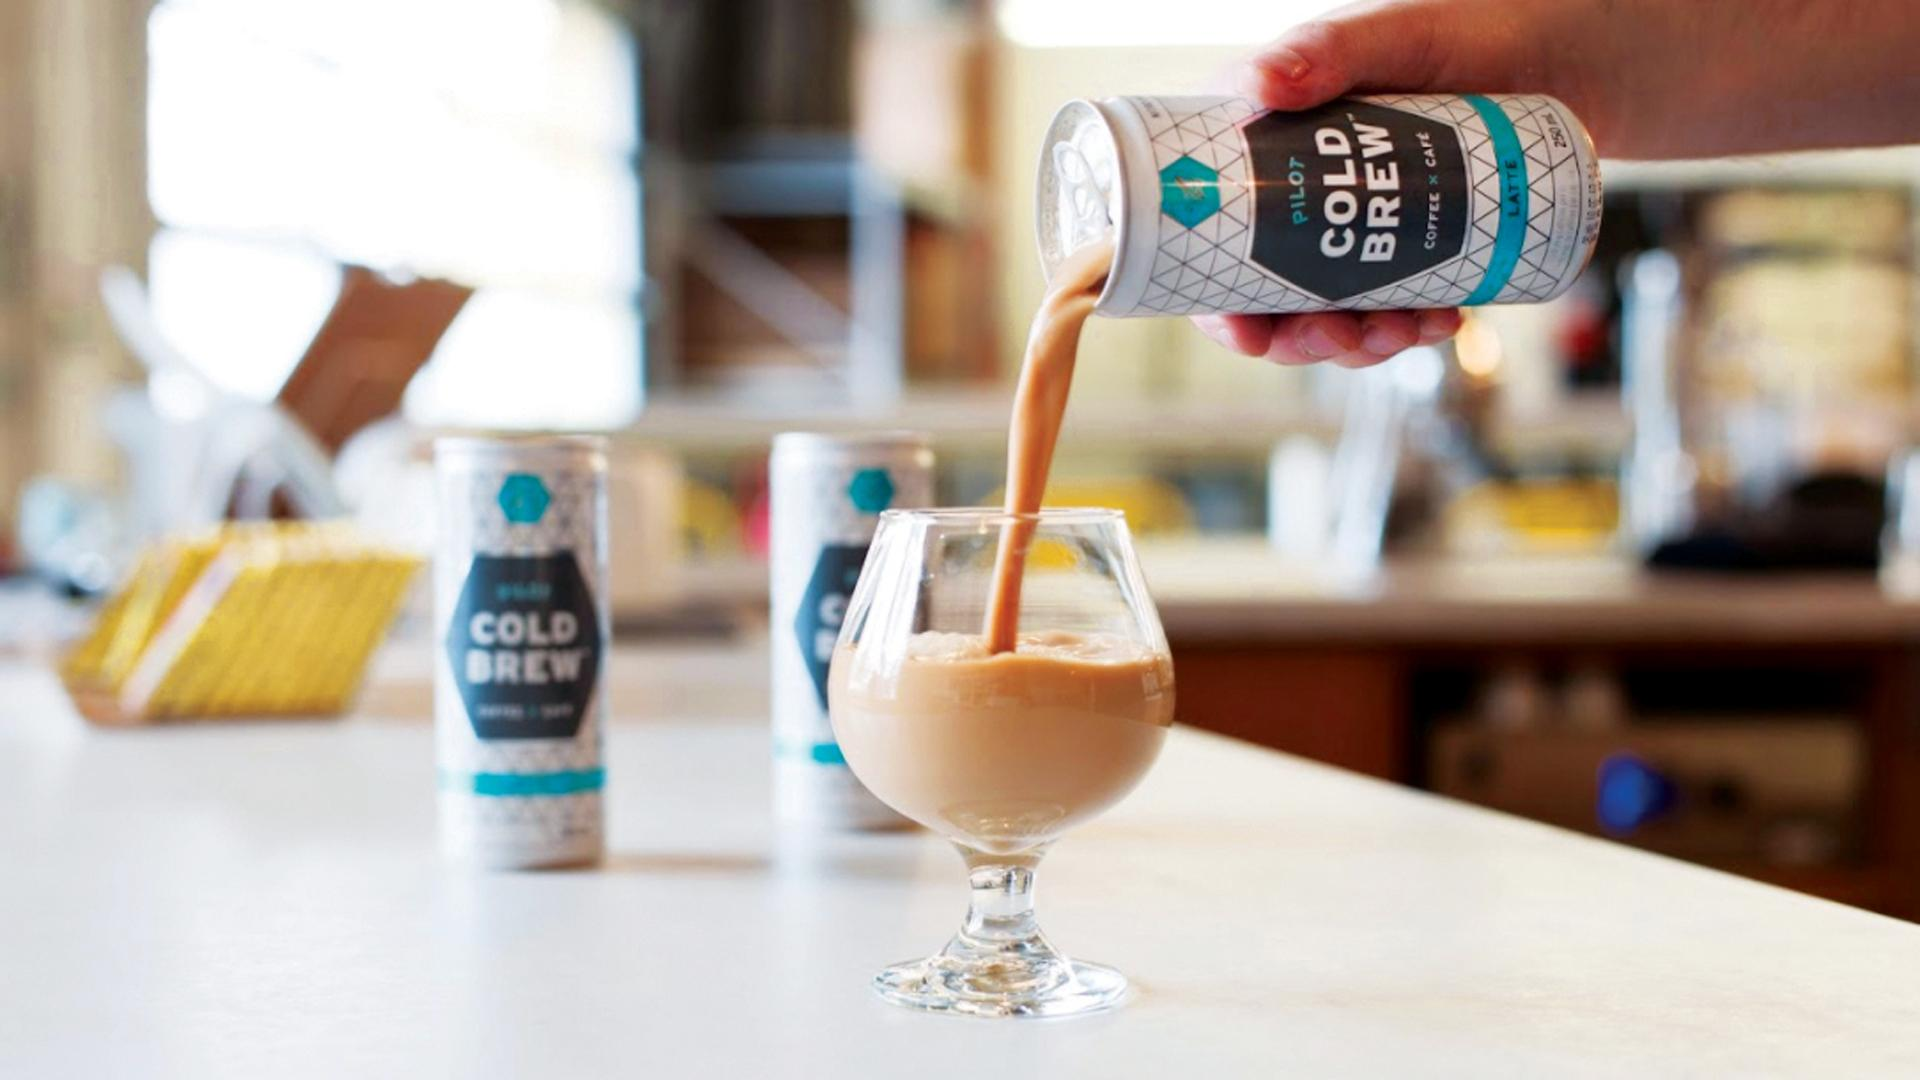 Pilot Coffee Roasters Cold Brew